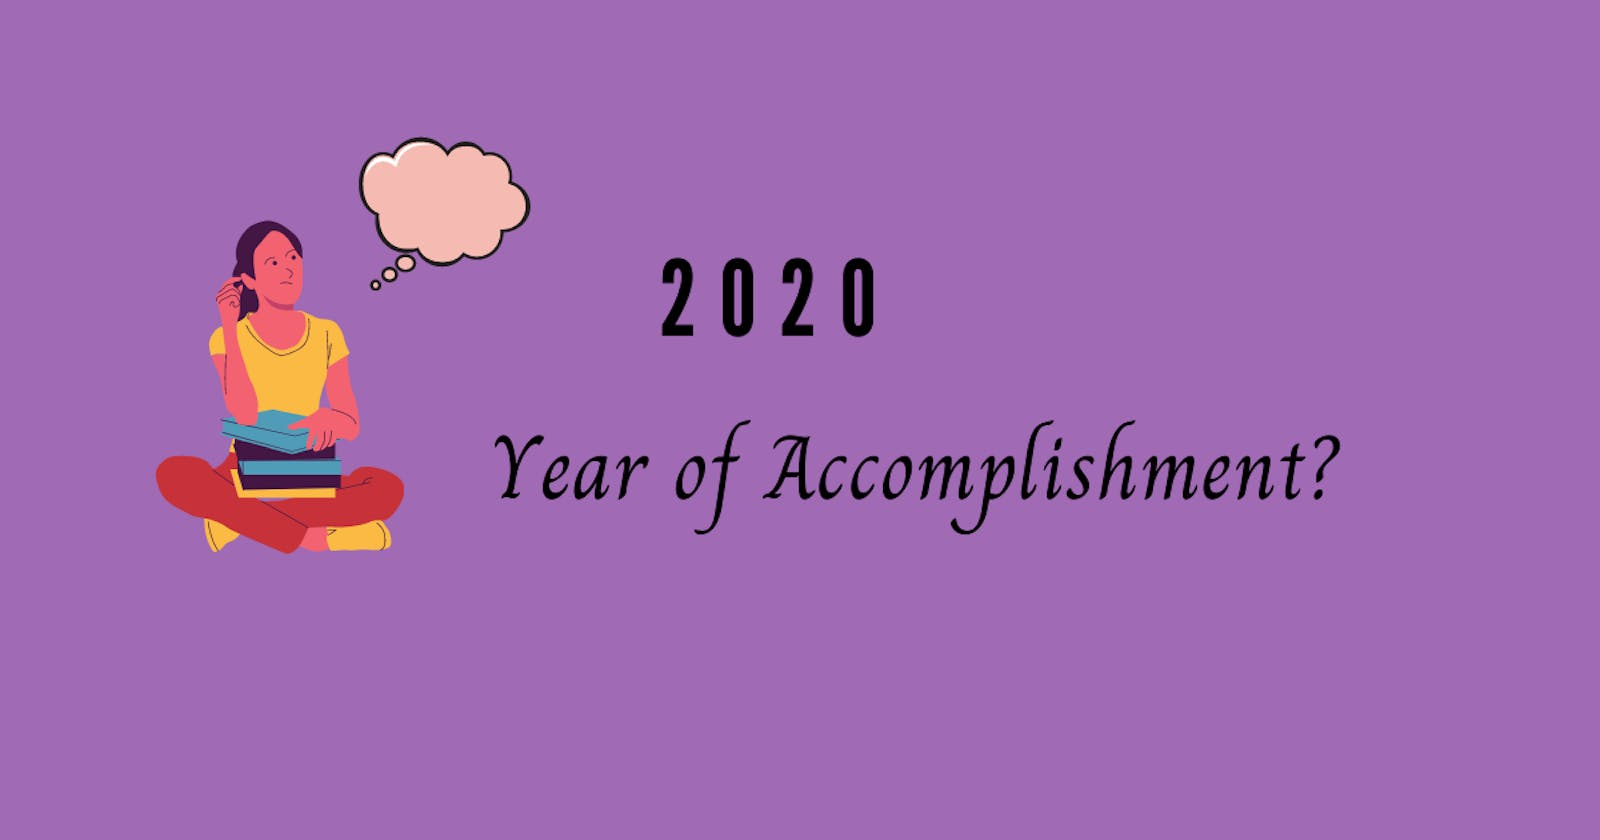 2020....The Year of Accomplishment?